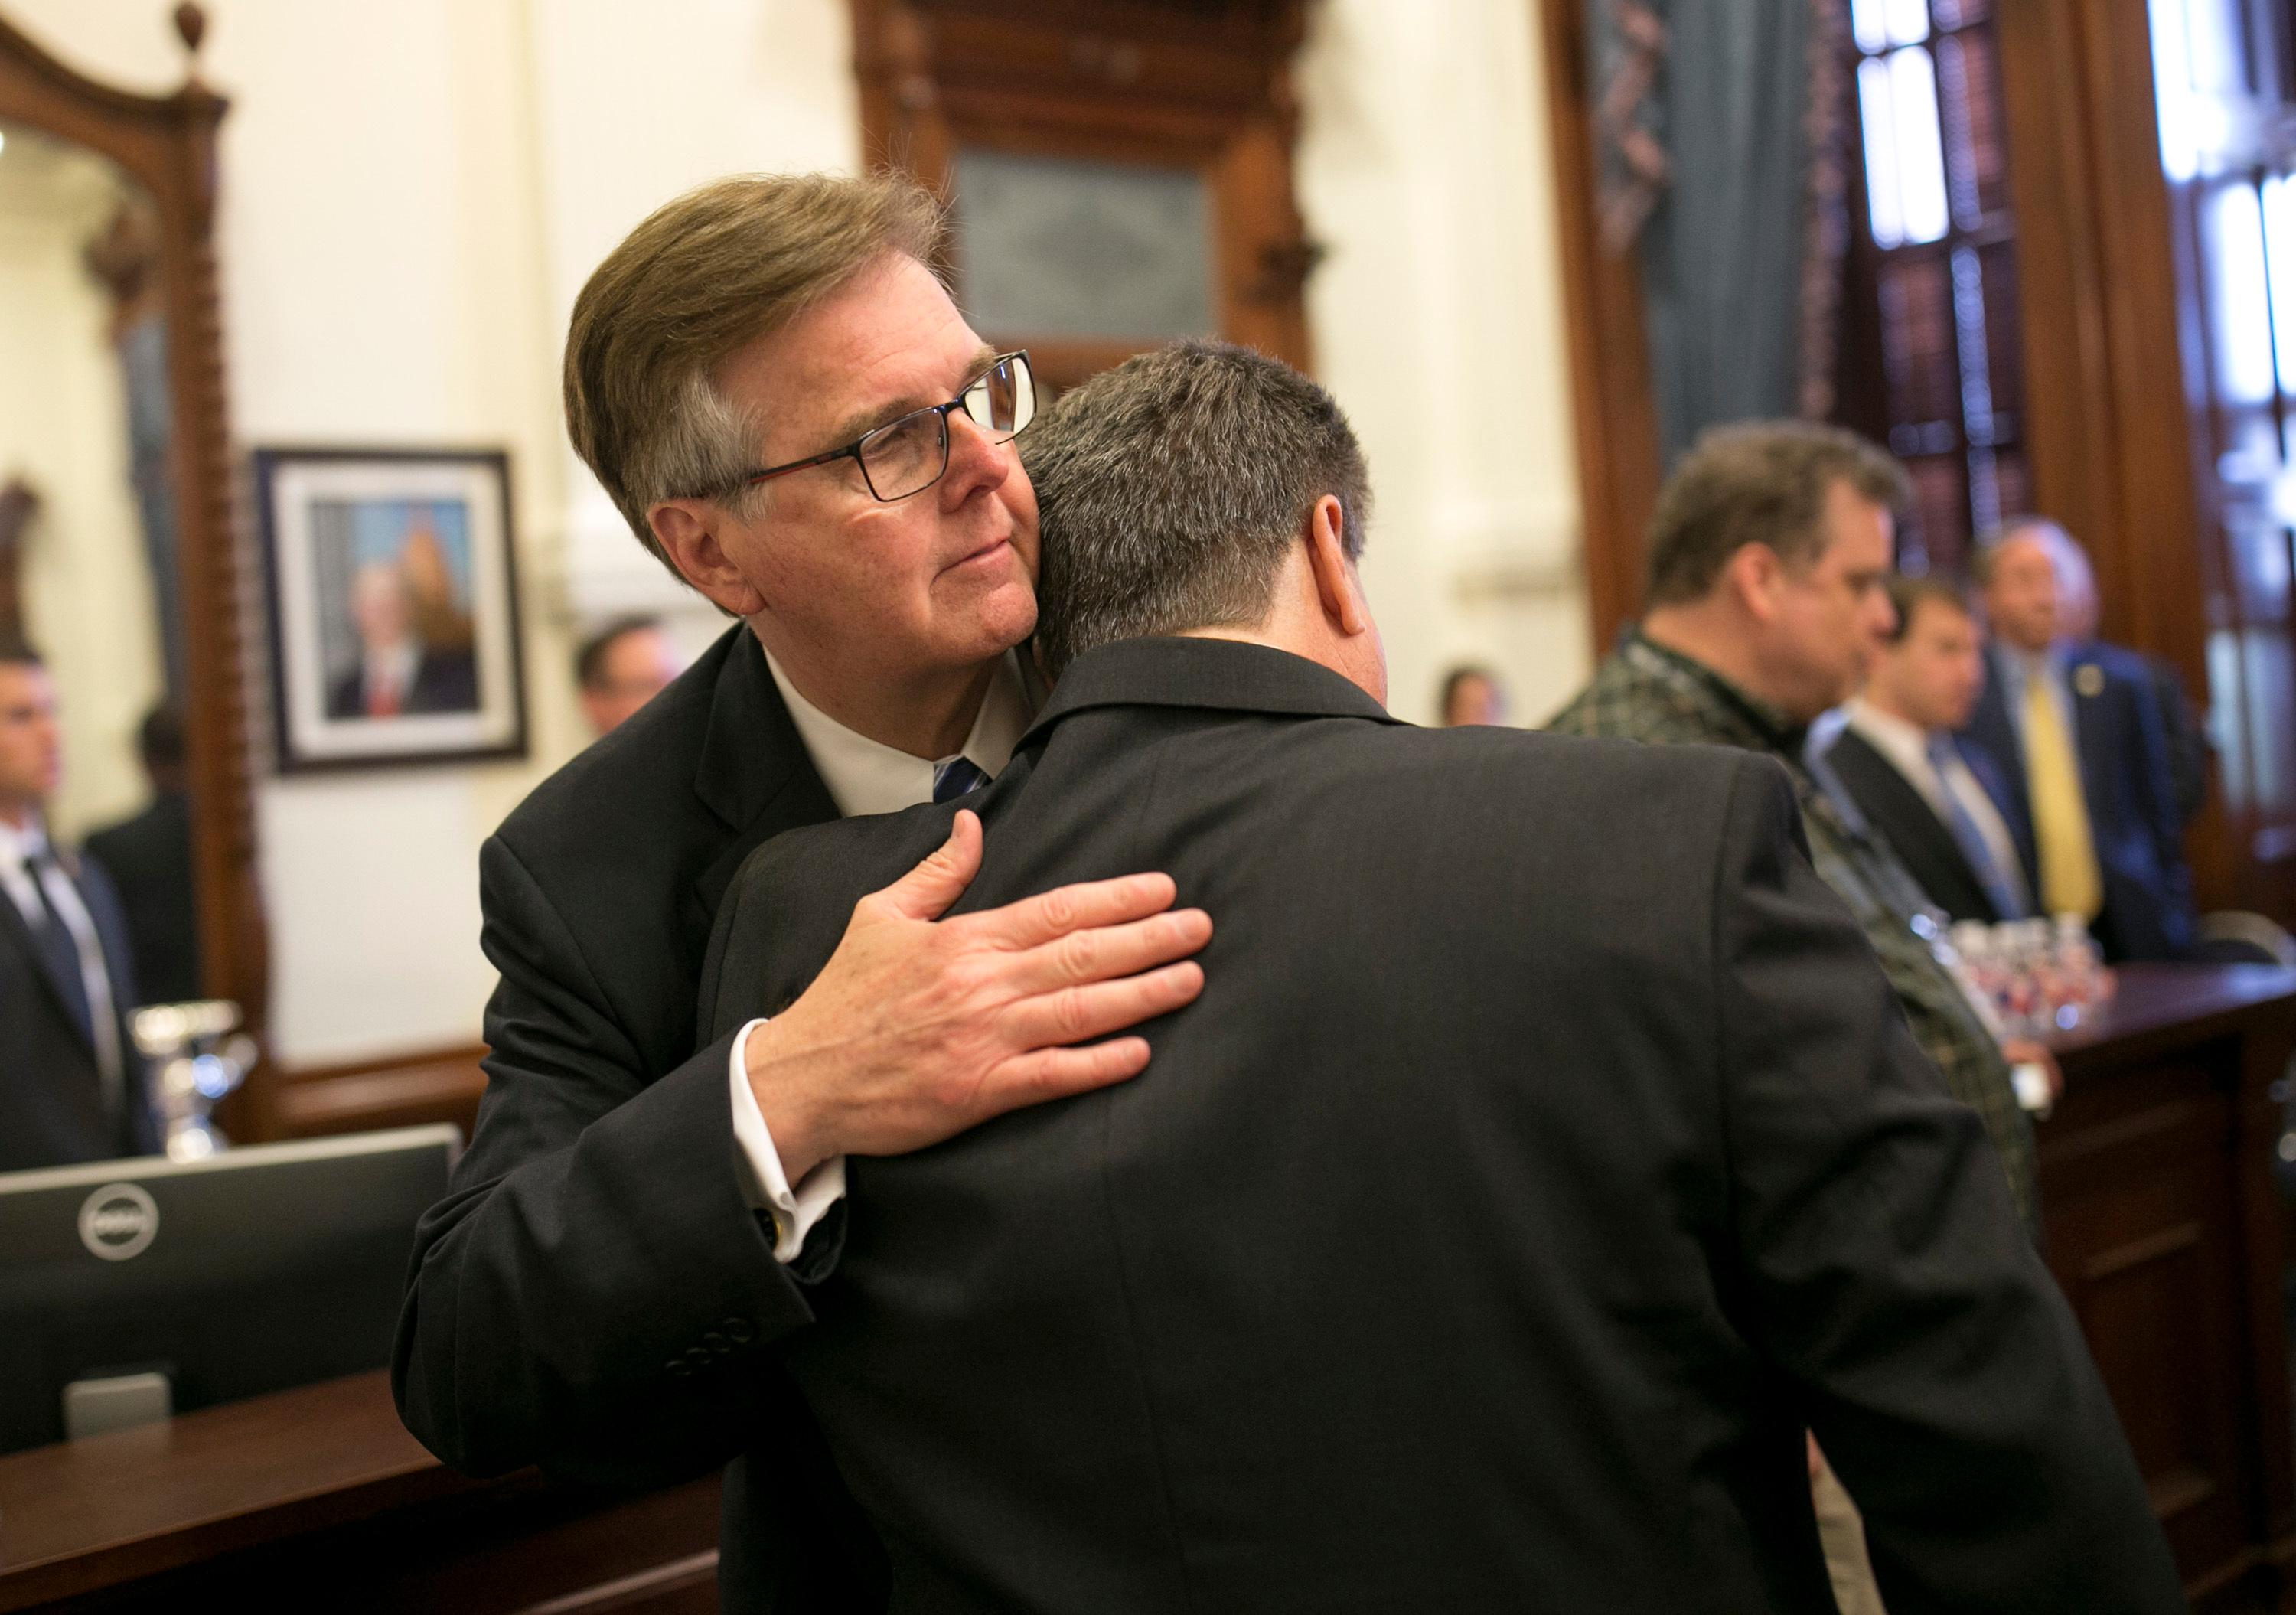 Lt. Gov. Dan Patrick, left, hugs Scot Rice during a discussion about guns in schools at the Governor's Reception Room at the Capitol in Austin, Texas, Thursday, May 24, 2018. Rice's wife Flo Rice, a substitute teacher, was carried from the Santa Fe scene of last week's school shooting after she was shot in the leg. (Jay Janner/Austin American-Statesman via AP)